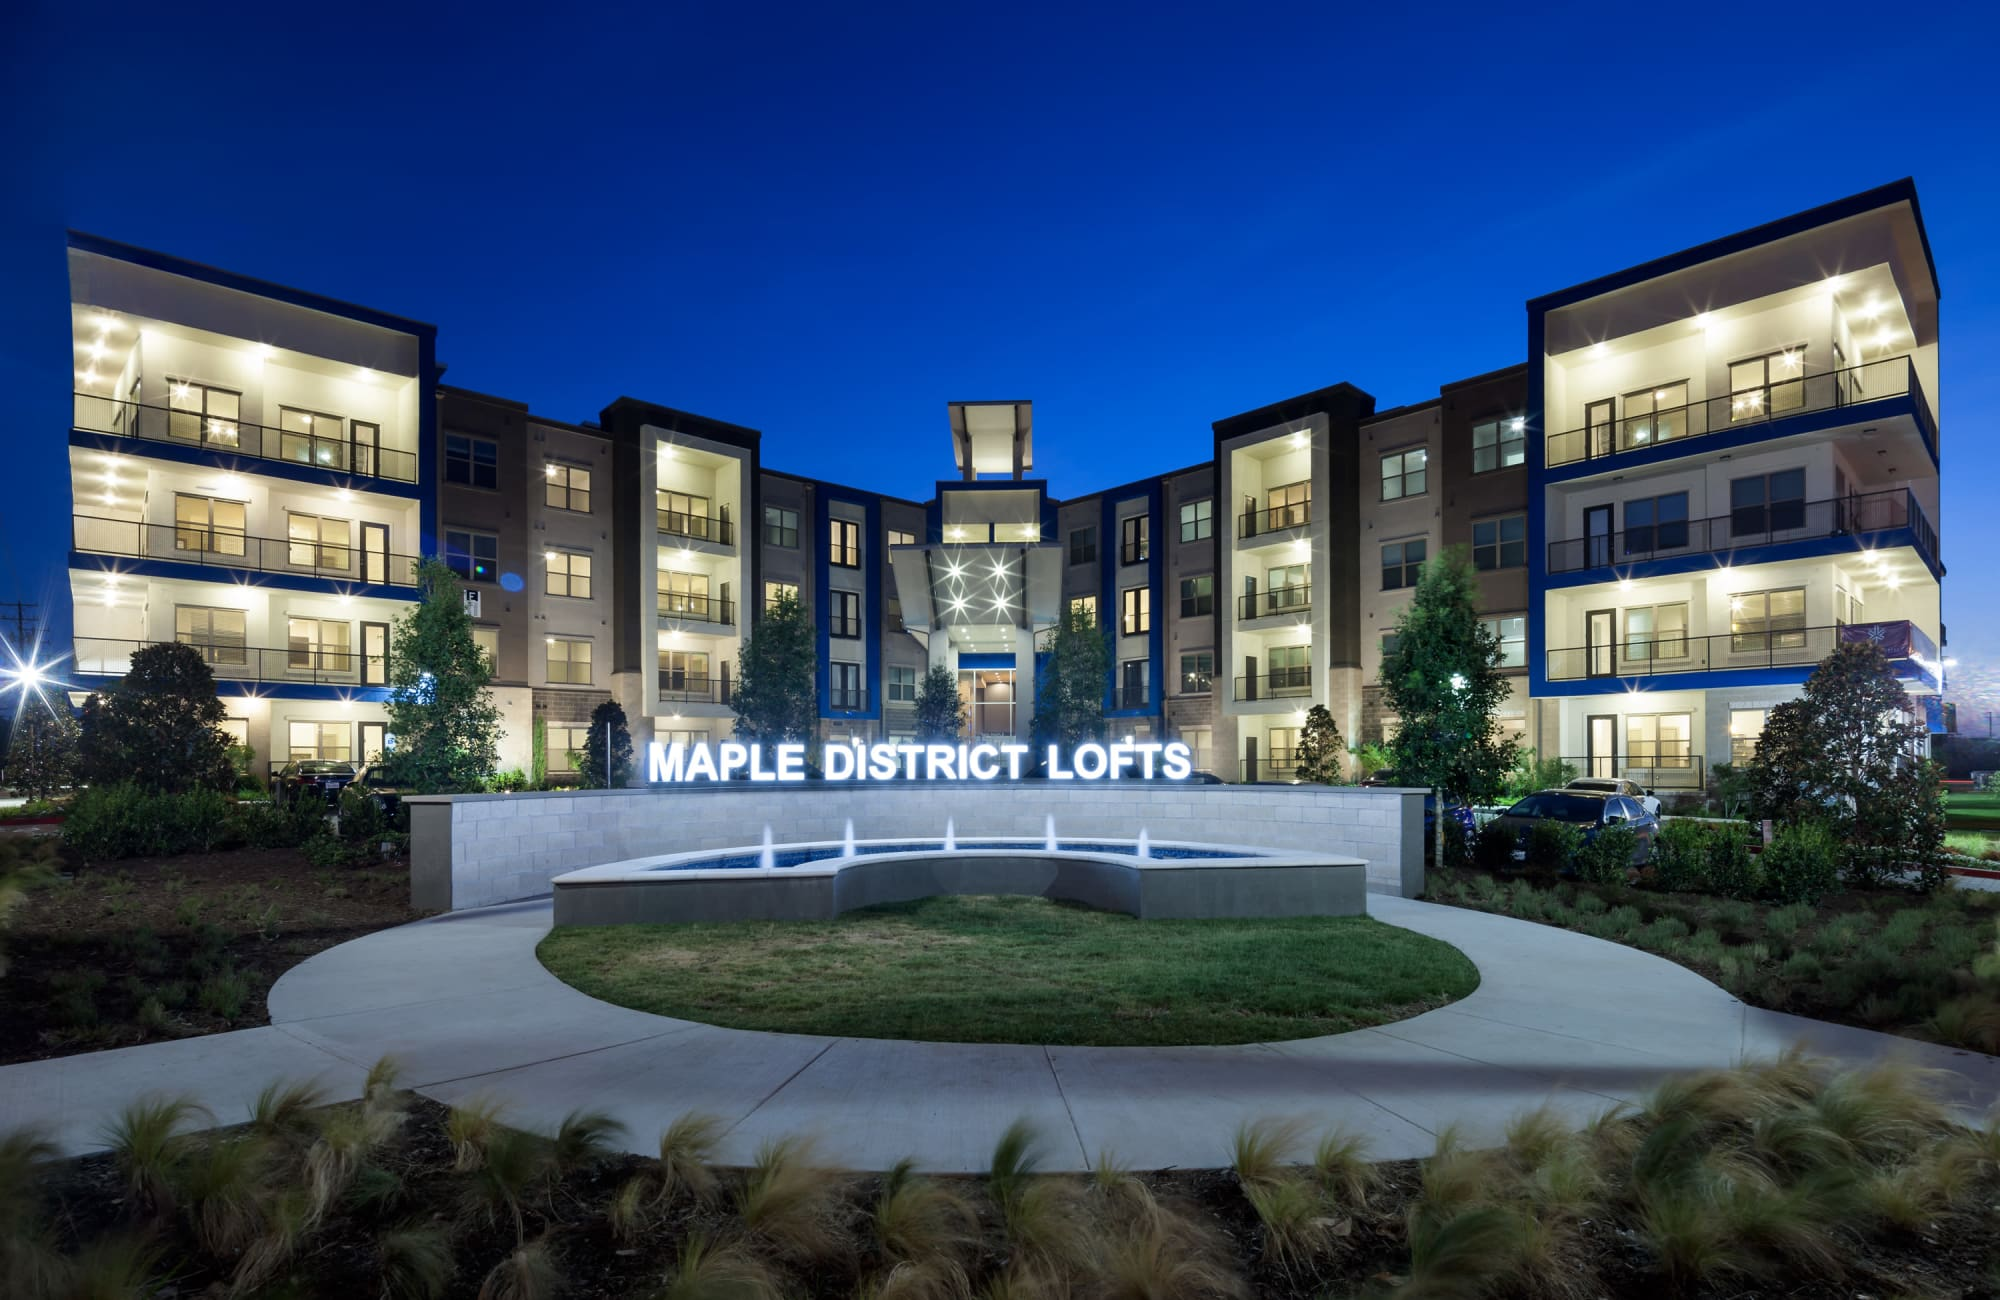 Apartments at Maple District Lofts in Dallas, Texas